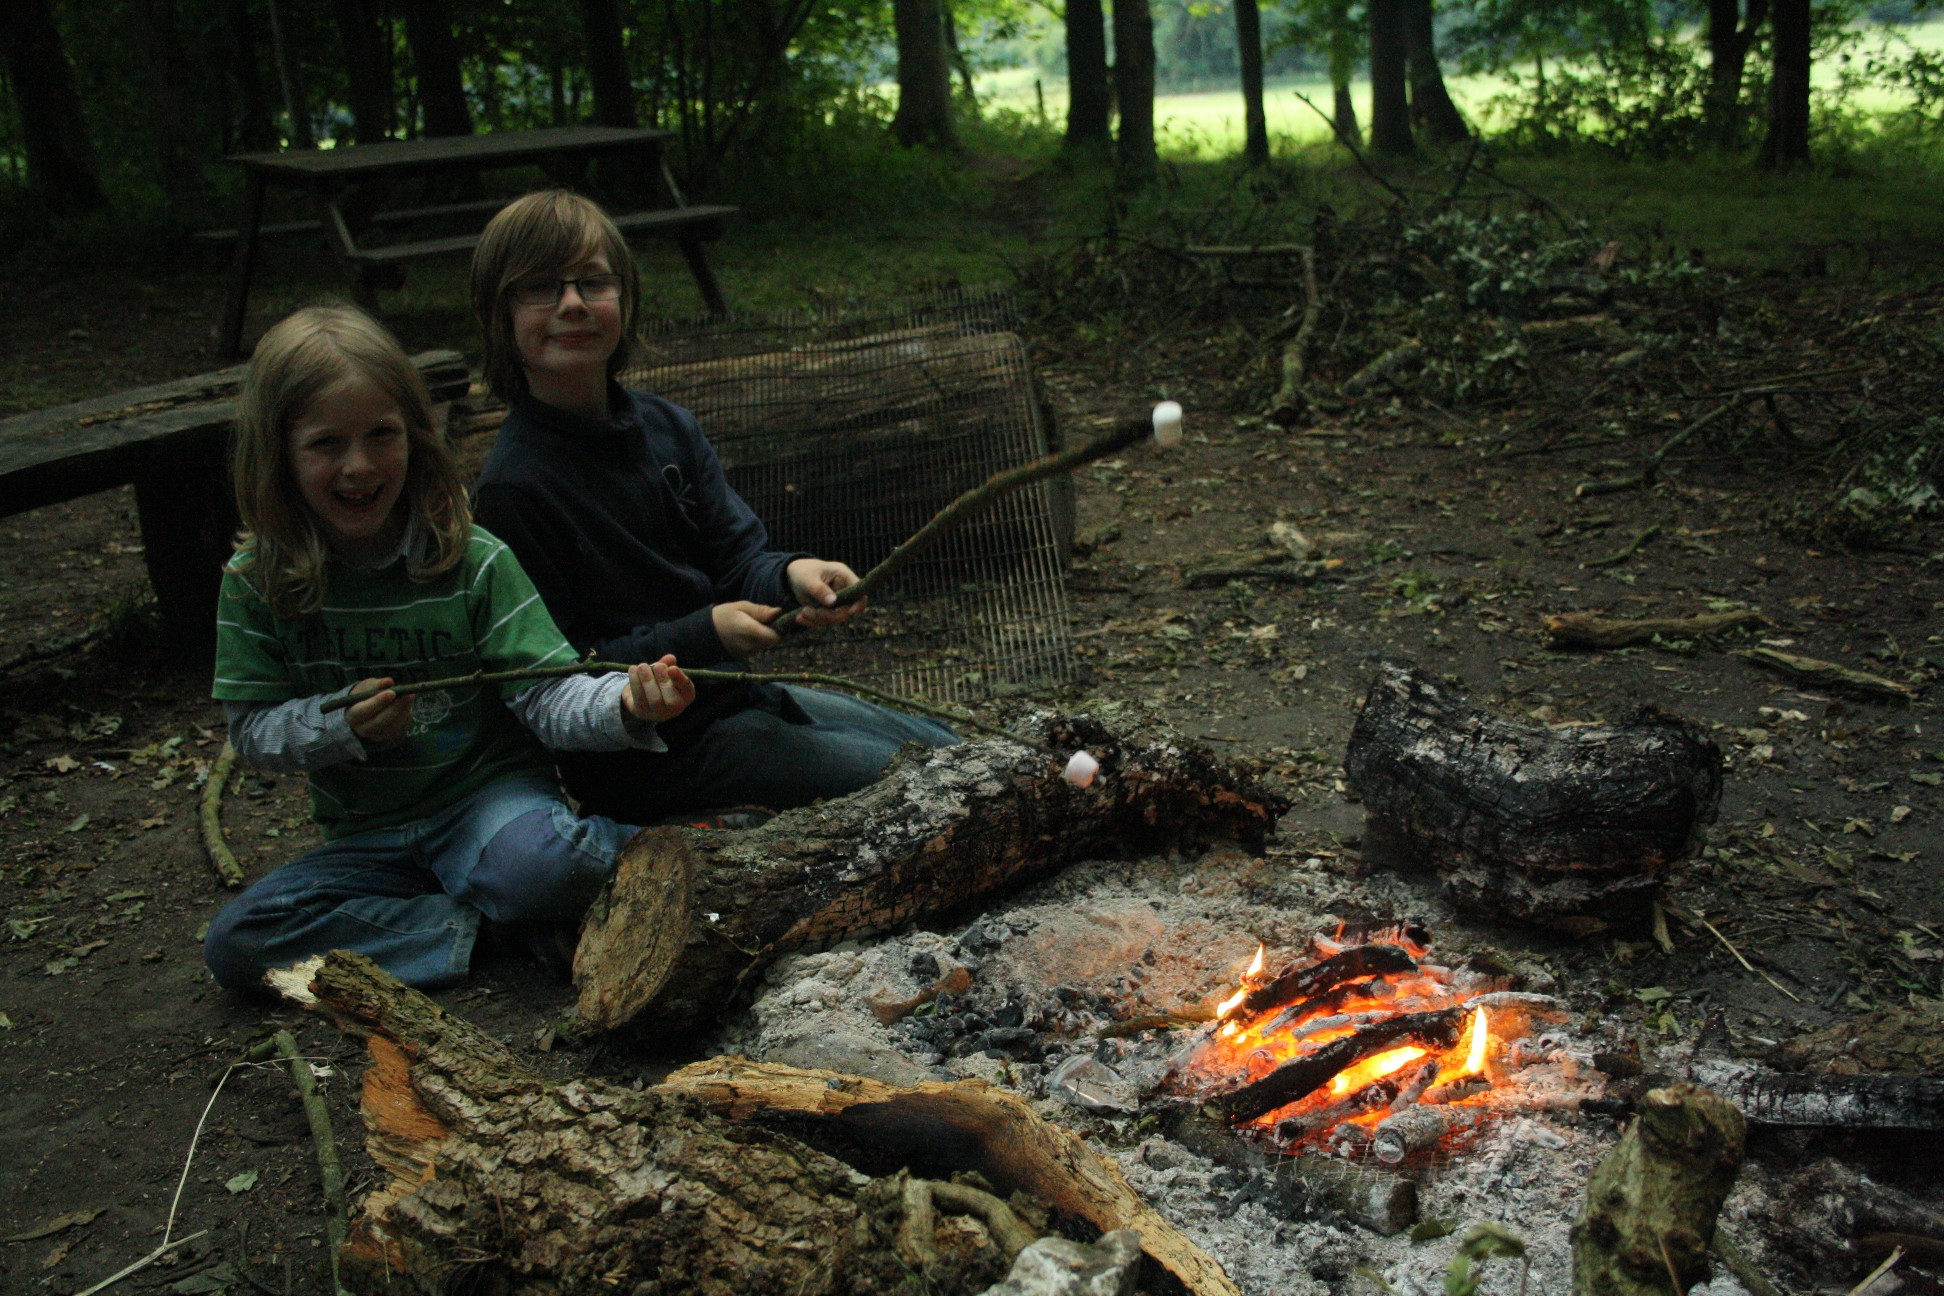 Roasting marshmellows over the fire - a perfect ending of a lovely day.